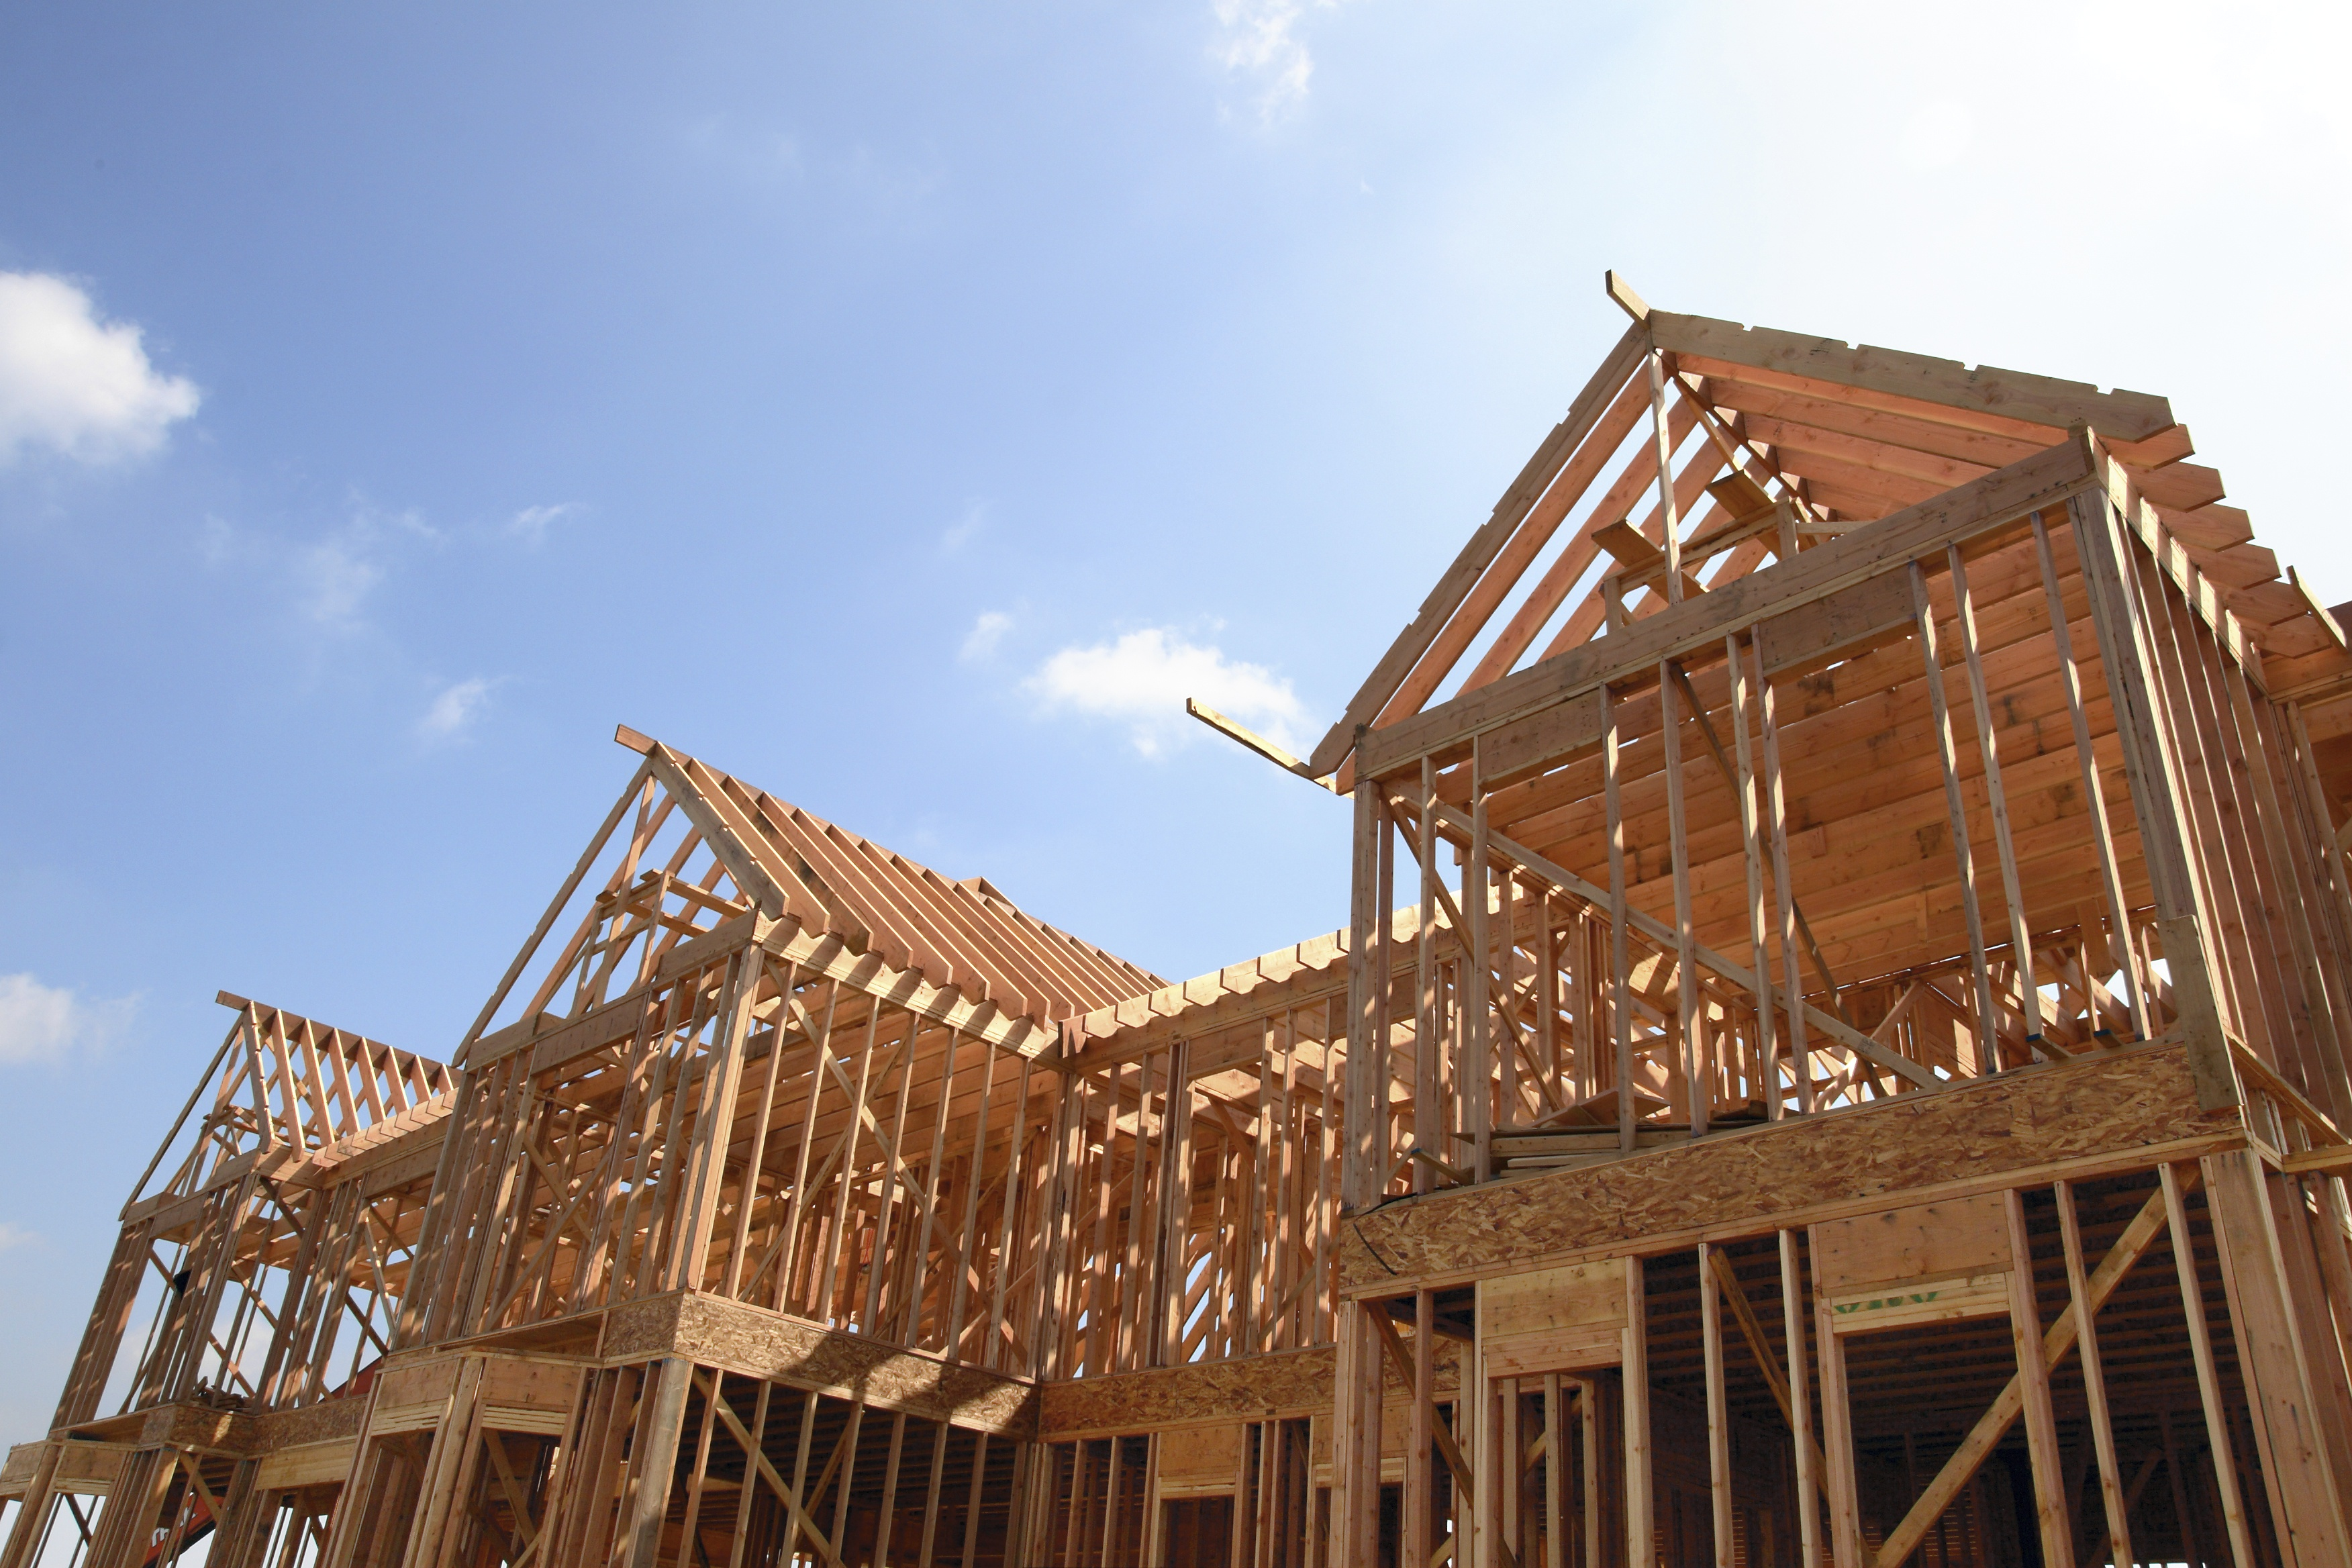 Building A House : Where should you build your dream home rismedia s